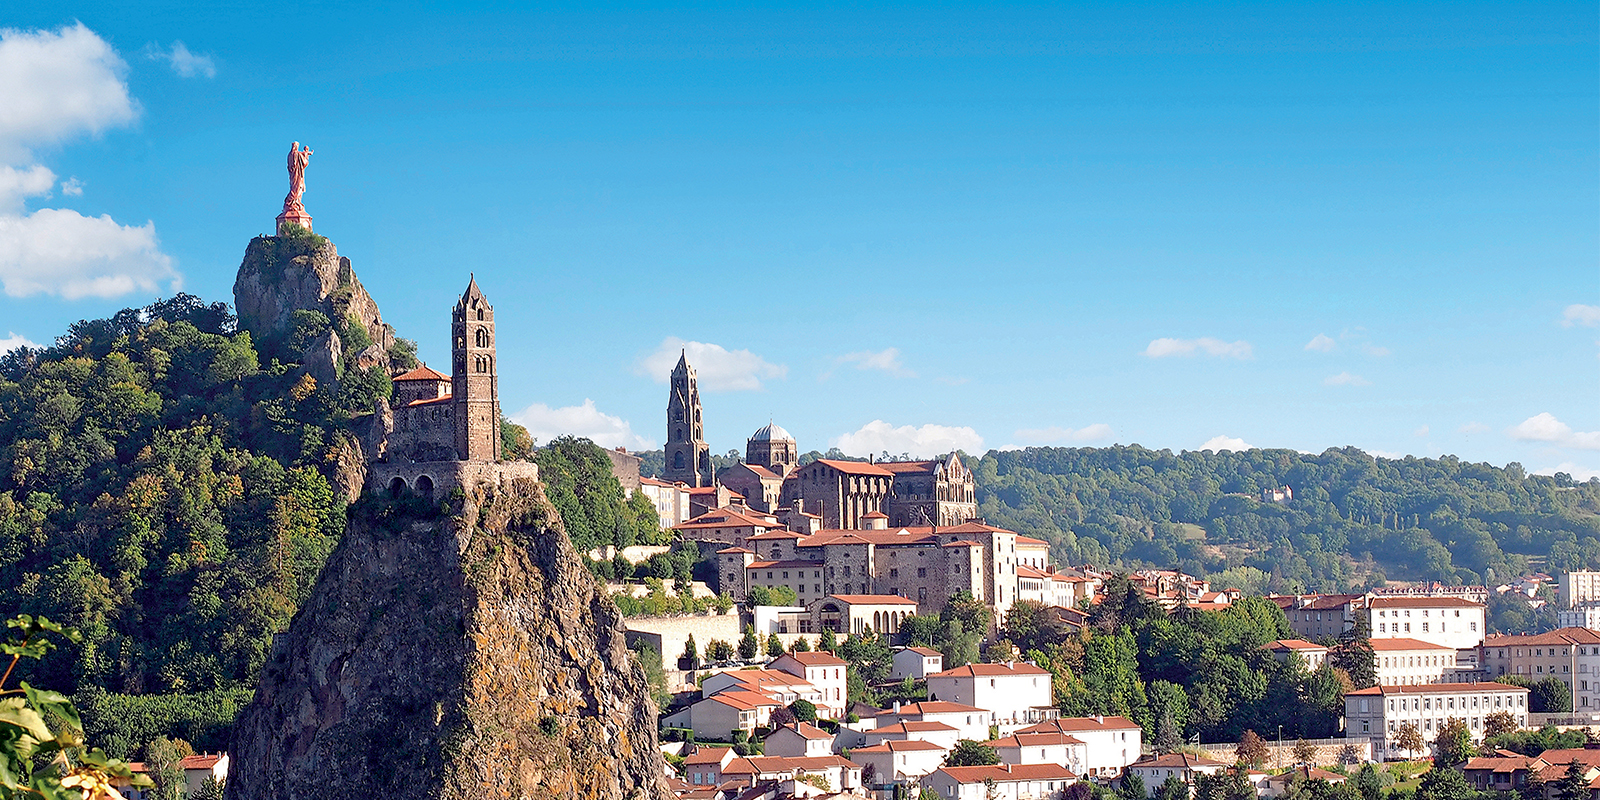 Le Puy - Conques: the Way of St James stage by stage